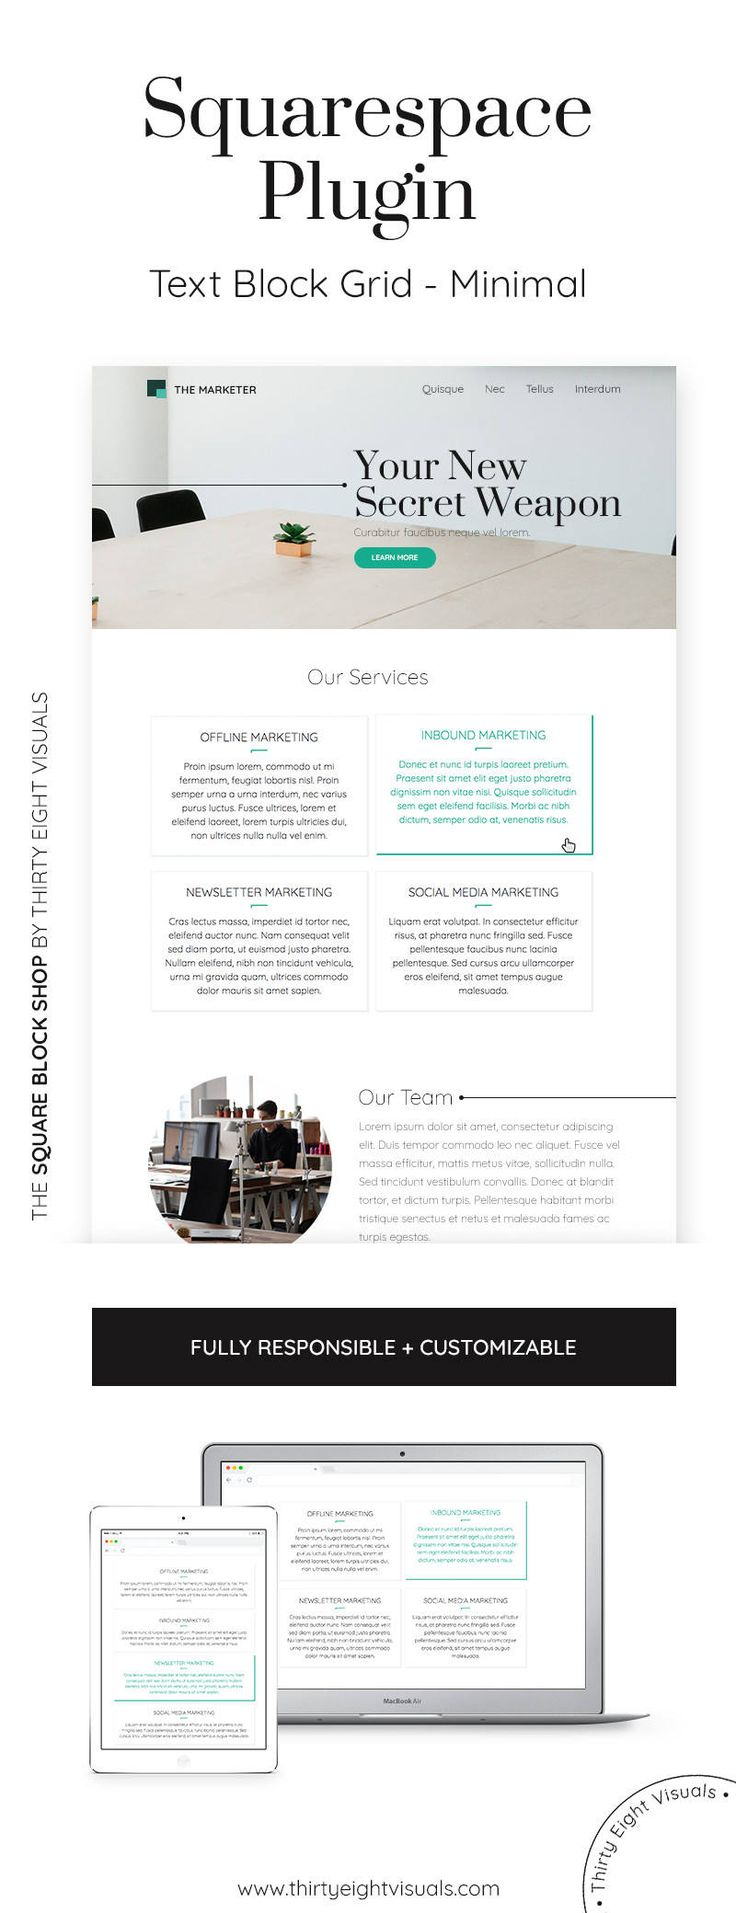 Squarespace plugin - This 4-block grid is meant to help you display your skills, services or any other brief blurb you want to showcase on your homepage to invite your visitors to click and learn more! Take a look